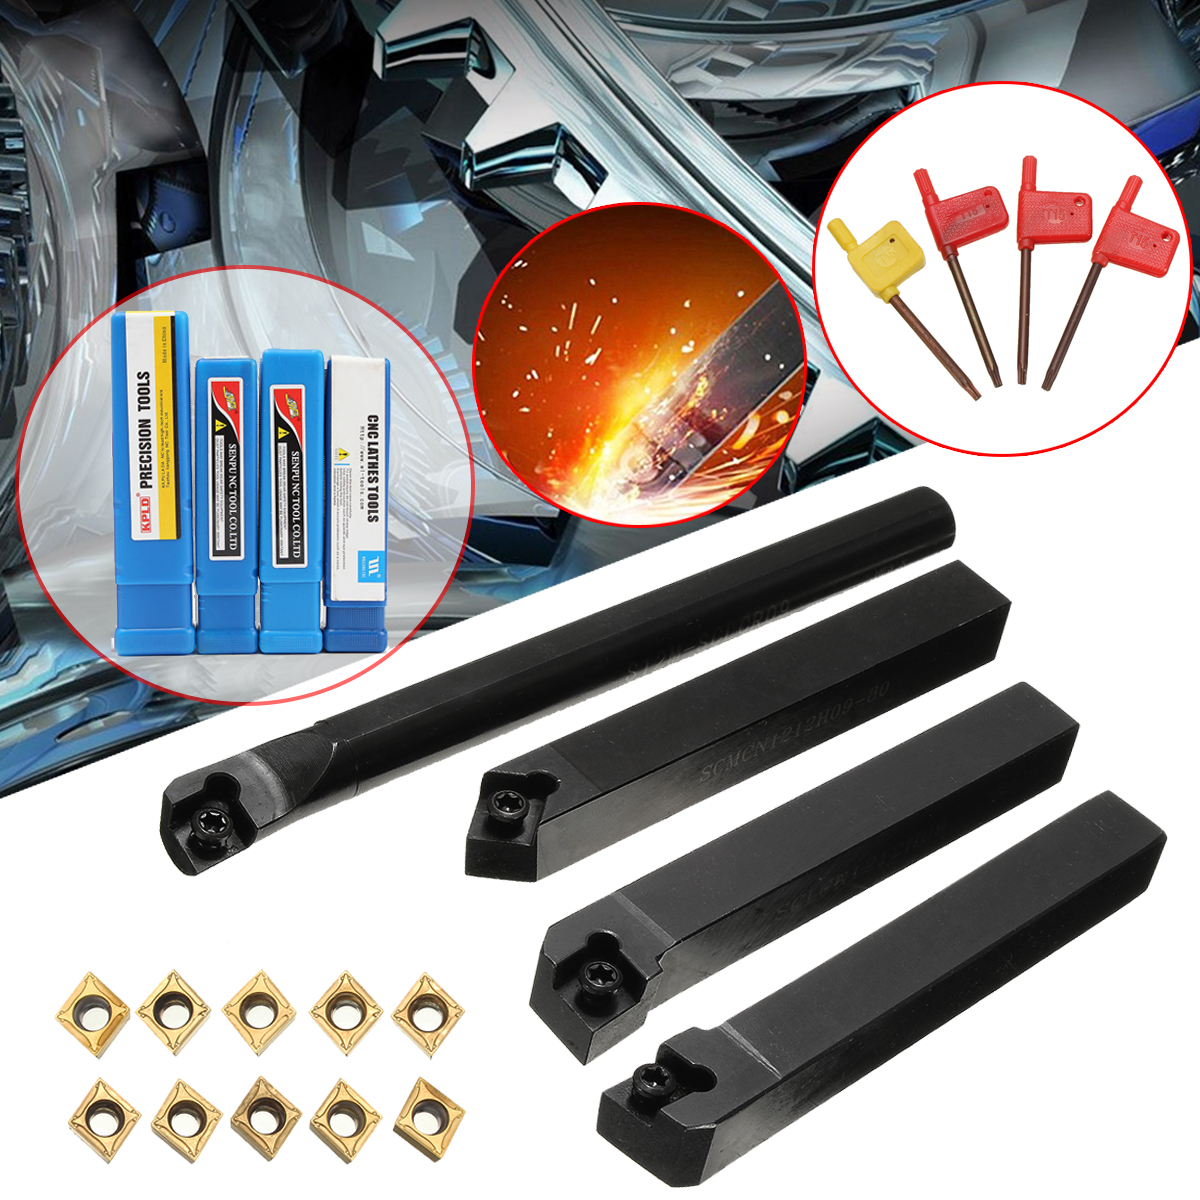 10X CCMT09T304 S12M-SCLCR09+1212H09+SCLCL+SCMCN1212H09 Lathe Turning Tool Holder Set Machine Tools T15 Wrench Carbide Insert Kit цена